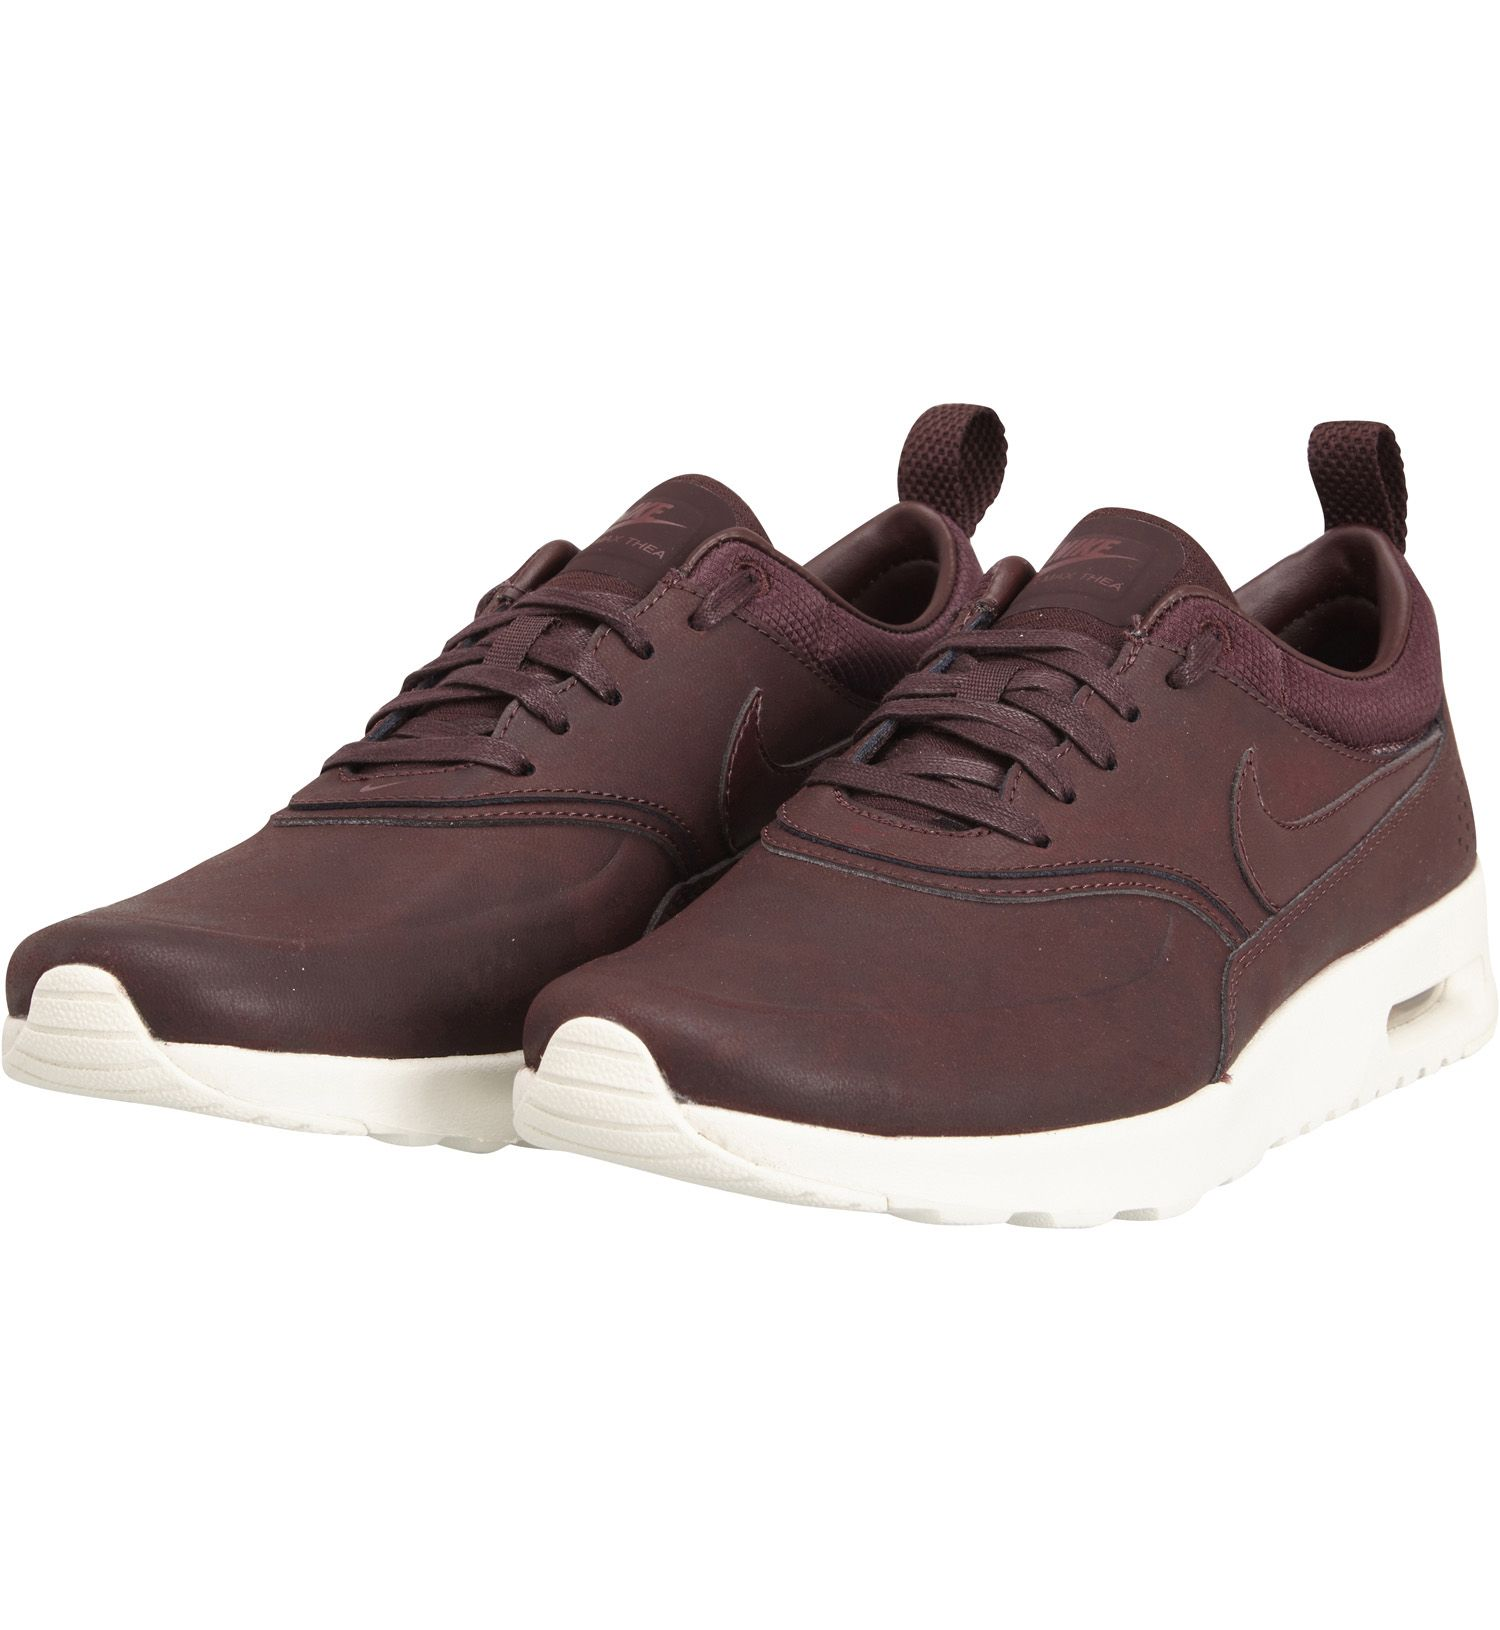 nike air max thea marron clair